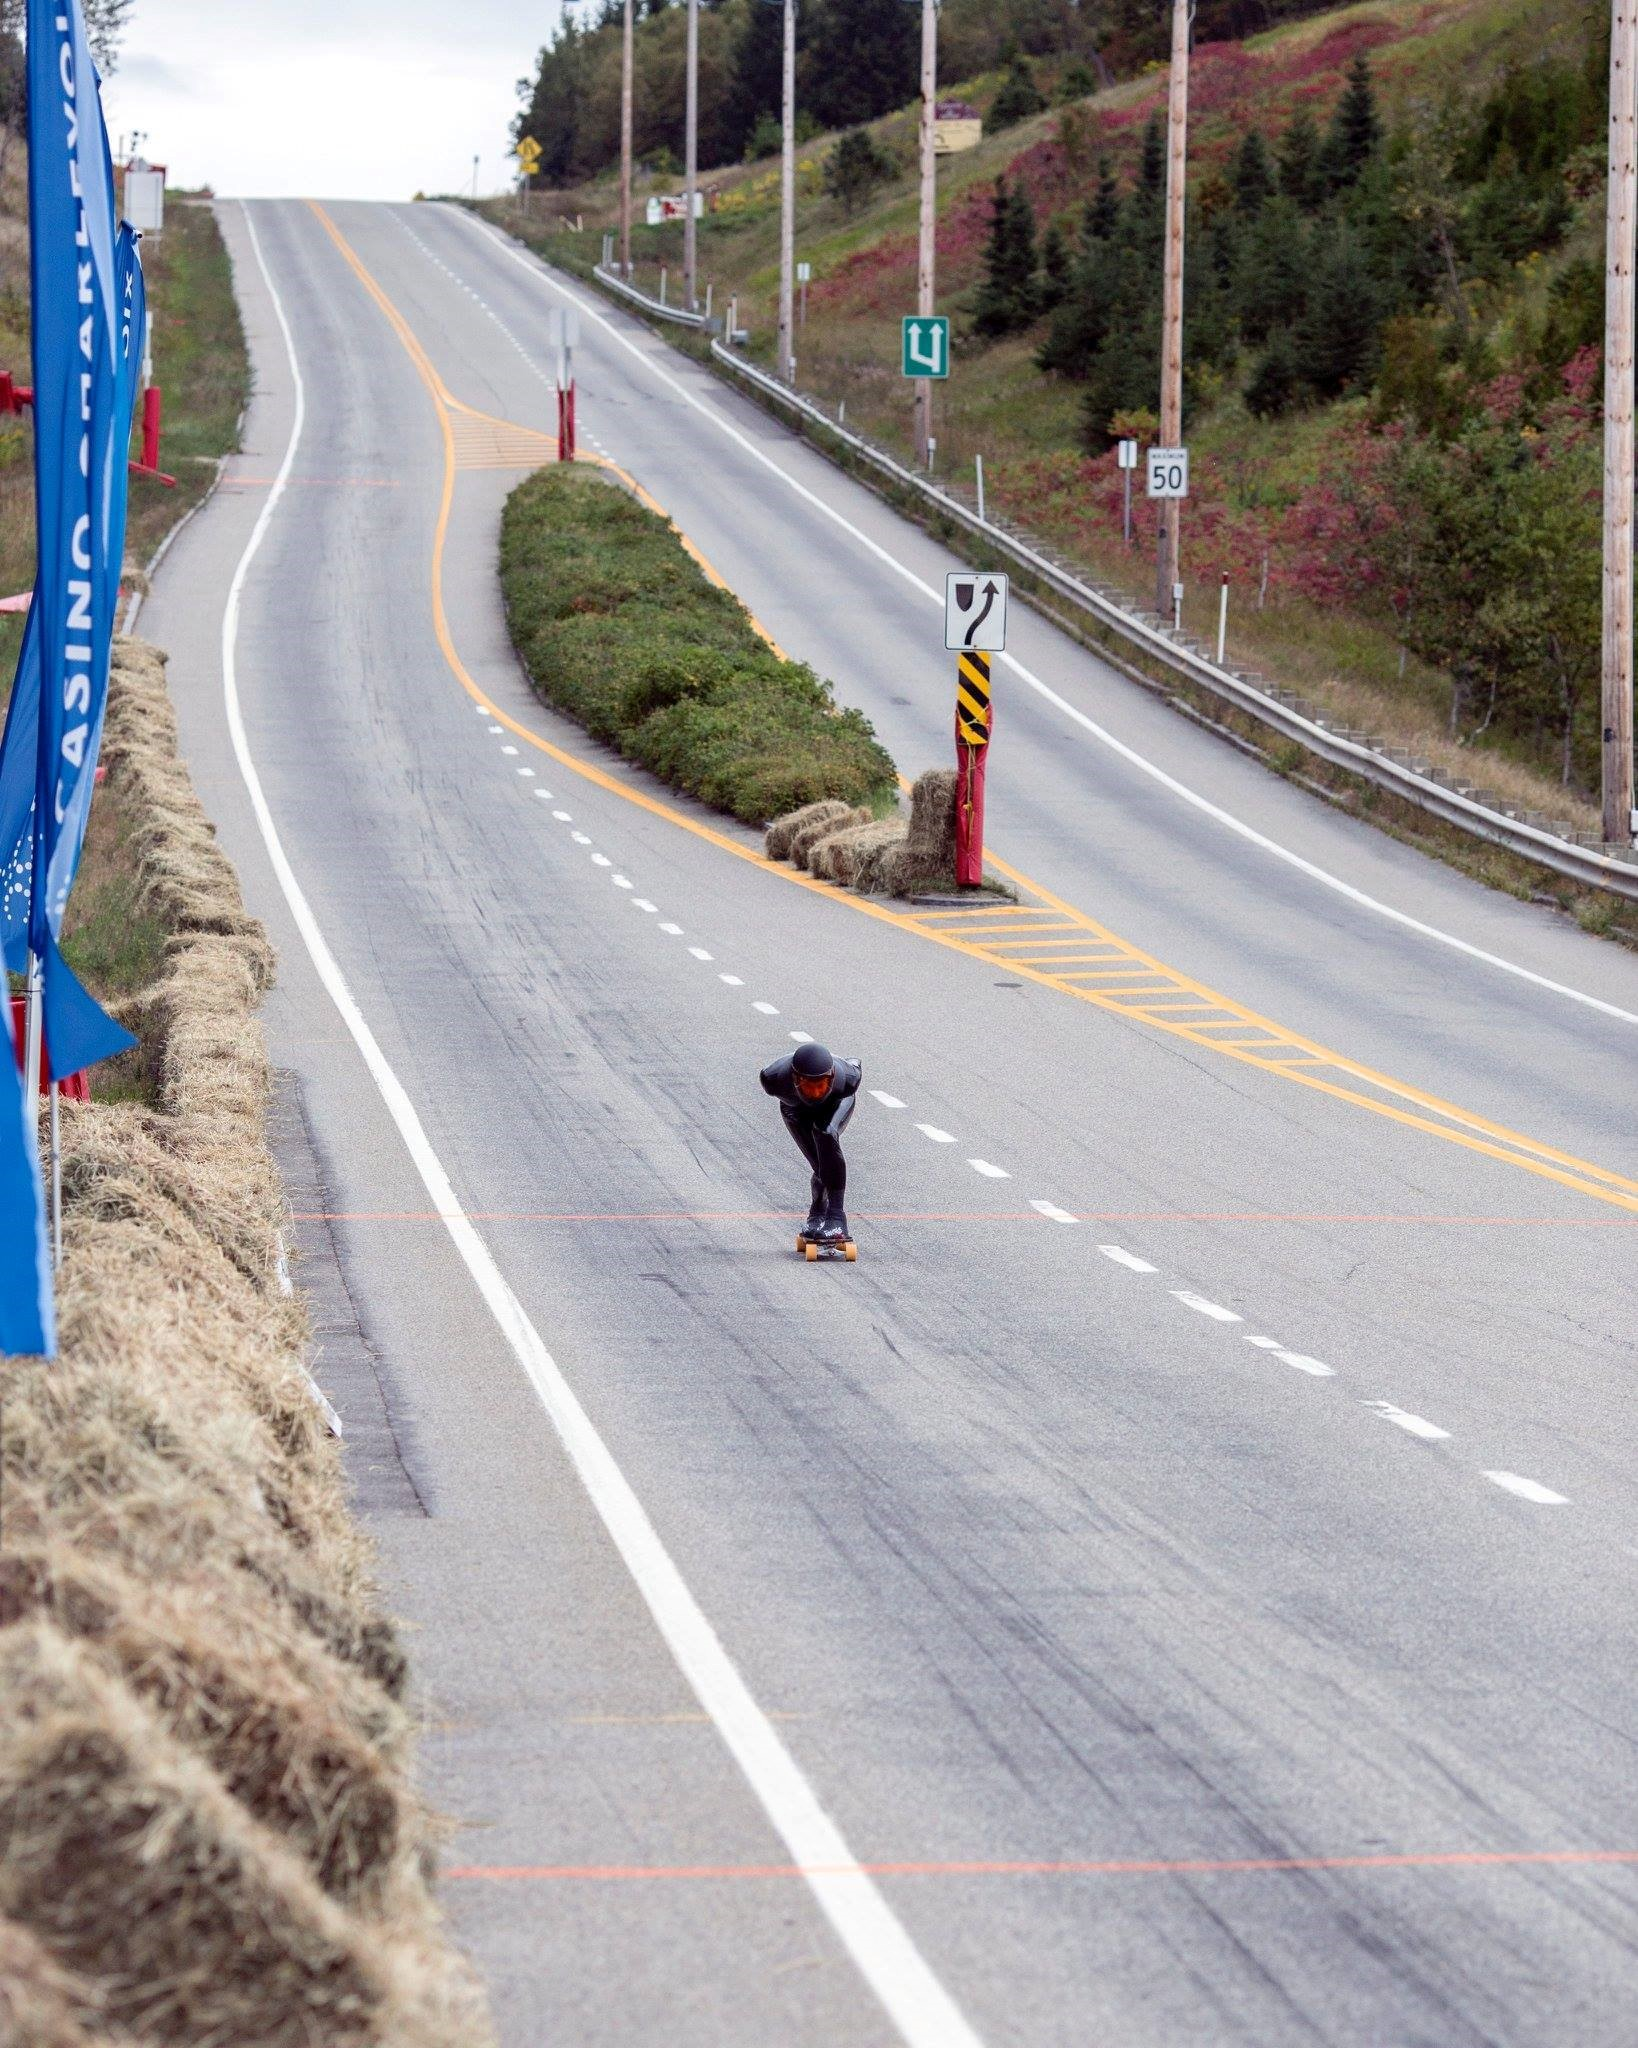 Introduction to competitive downhill skateboarding: Pete Connolly world record in Canada photo by Louis liberte